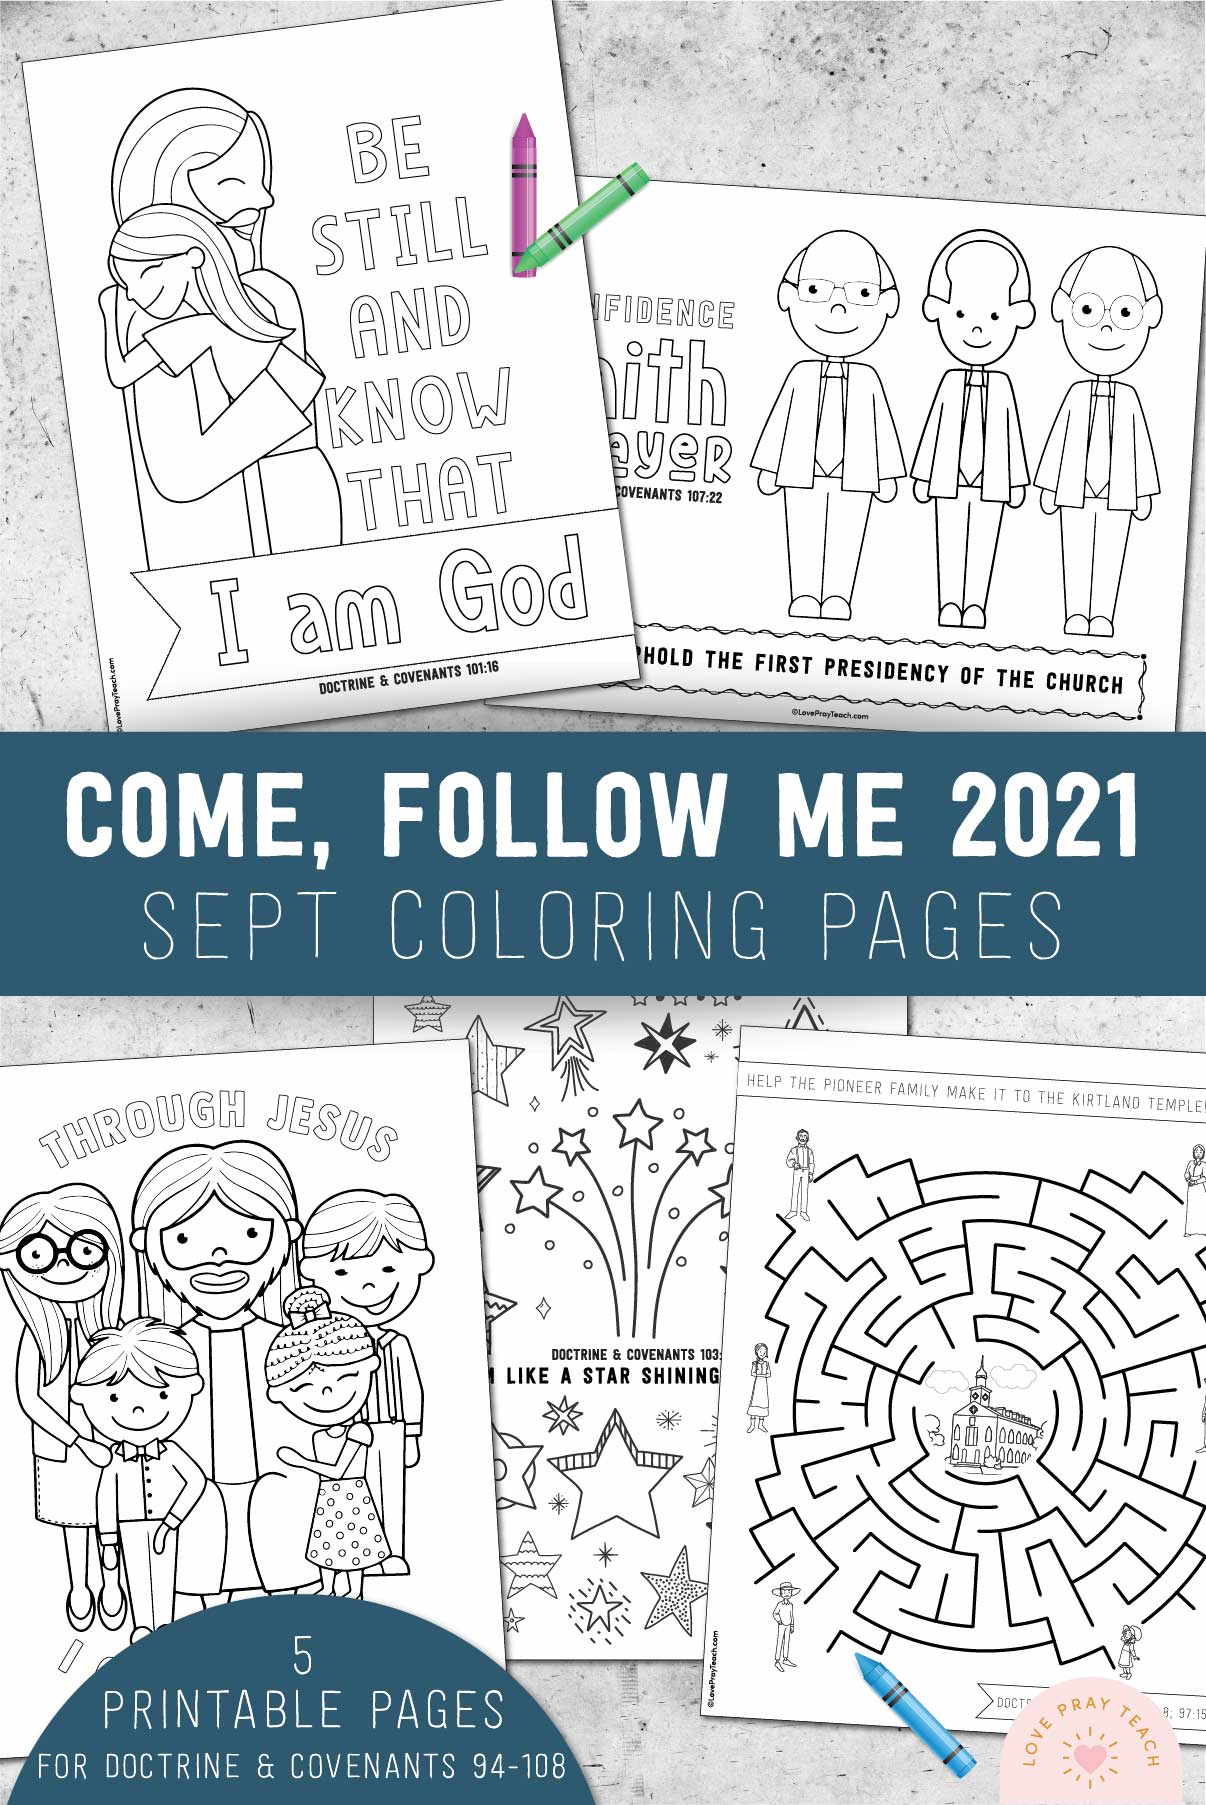 September 2021 Come, Follow Me Coloring Pages for Doctrine & Covenants 94-108 www.LovePrayTeach.com